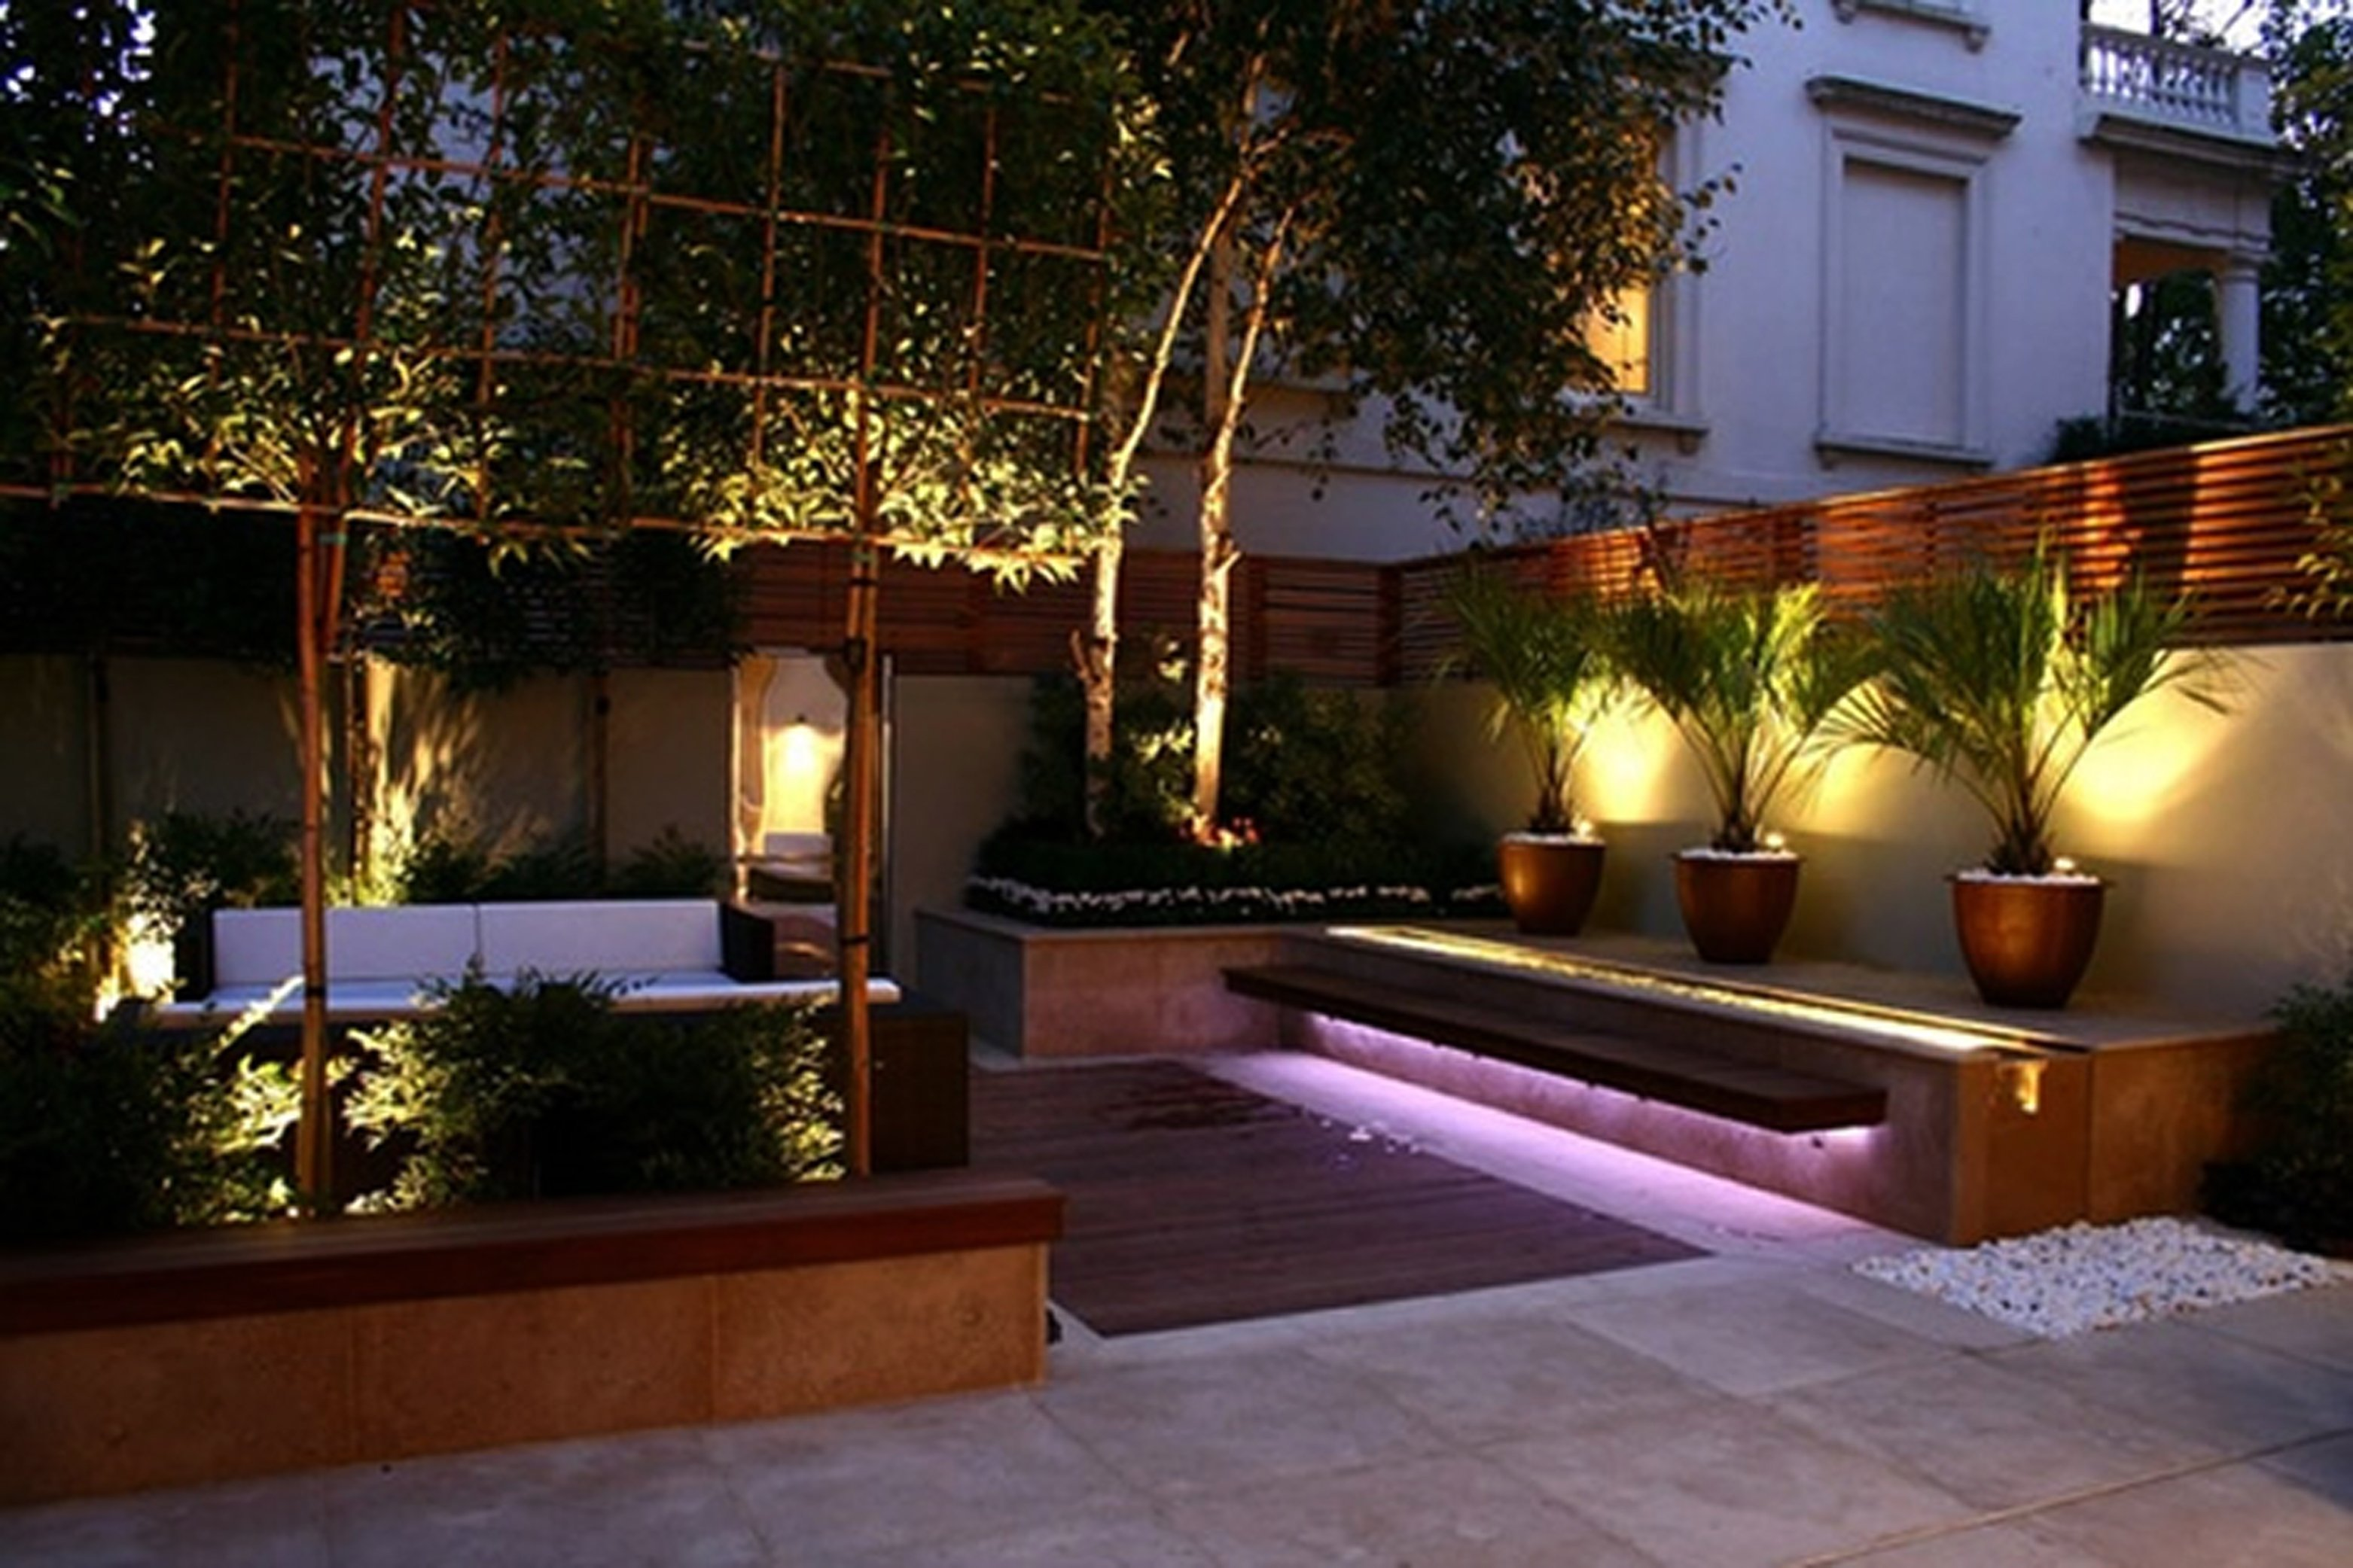 Ideas para decorar exteriores en primavera for Luces decoracion exterior